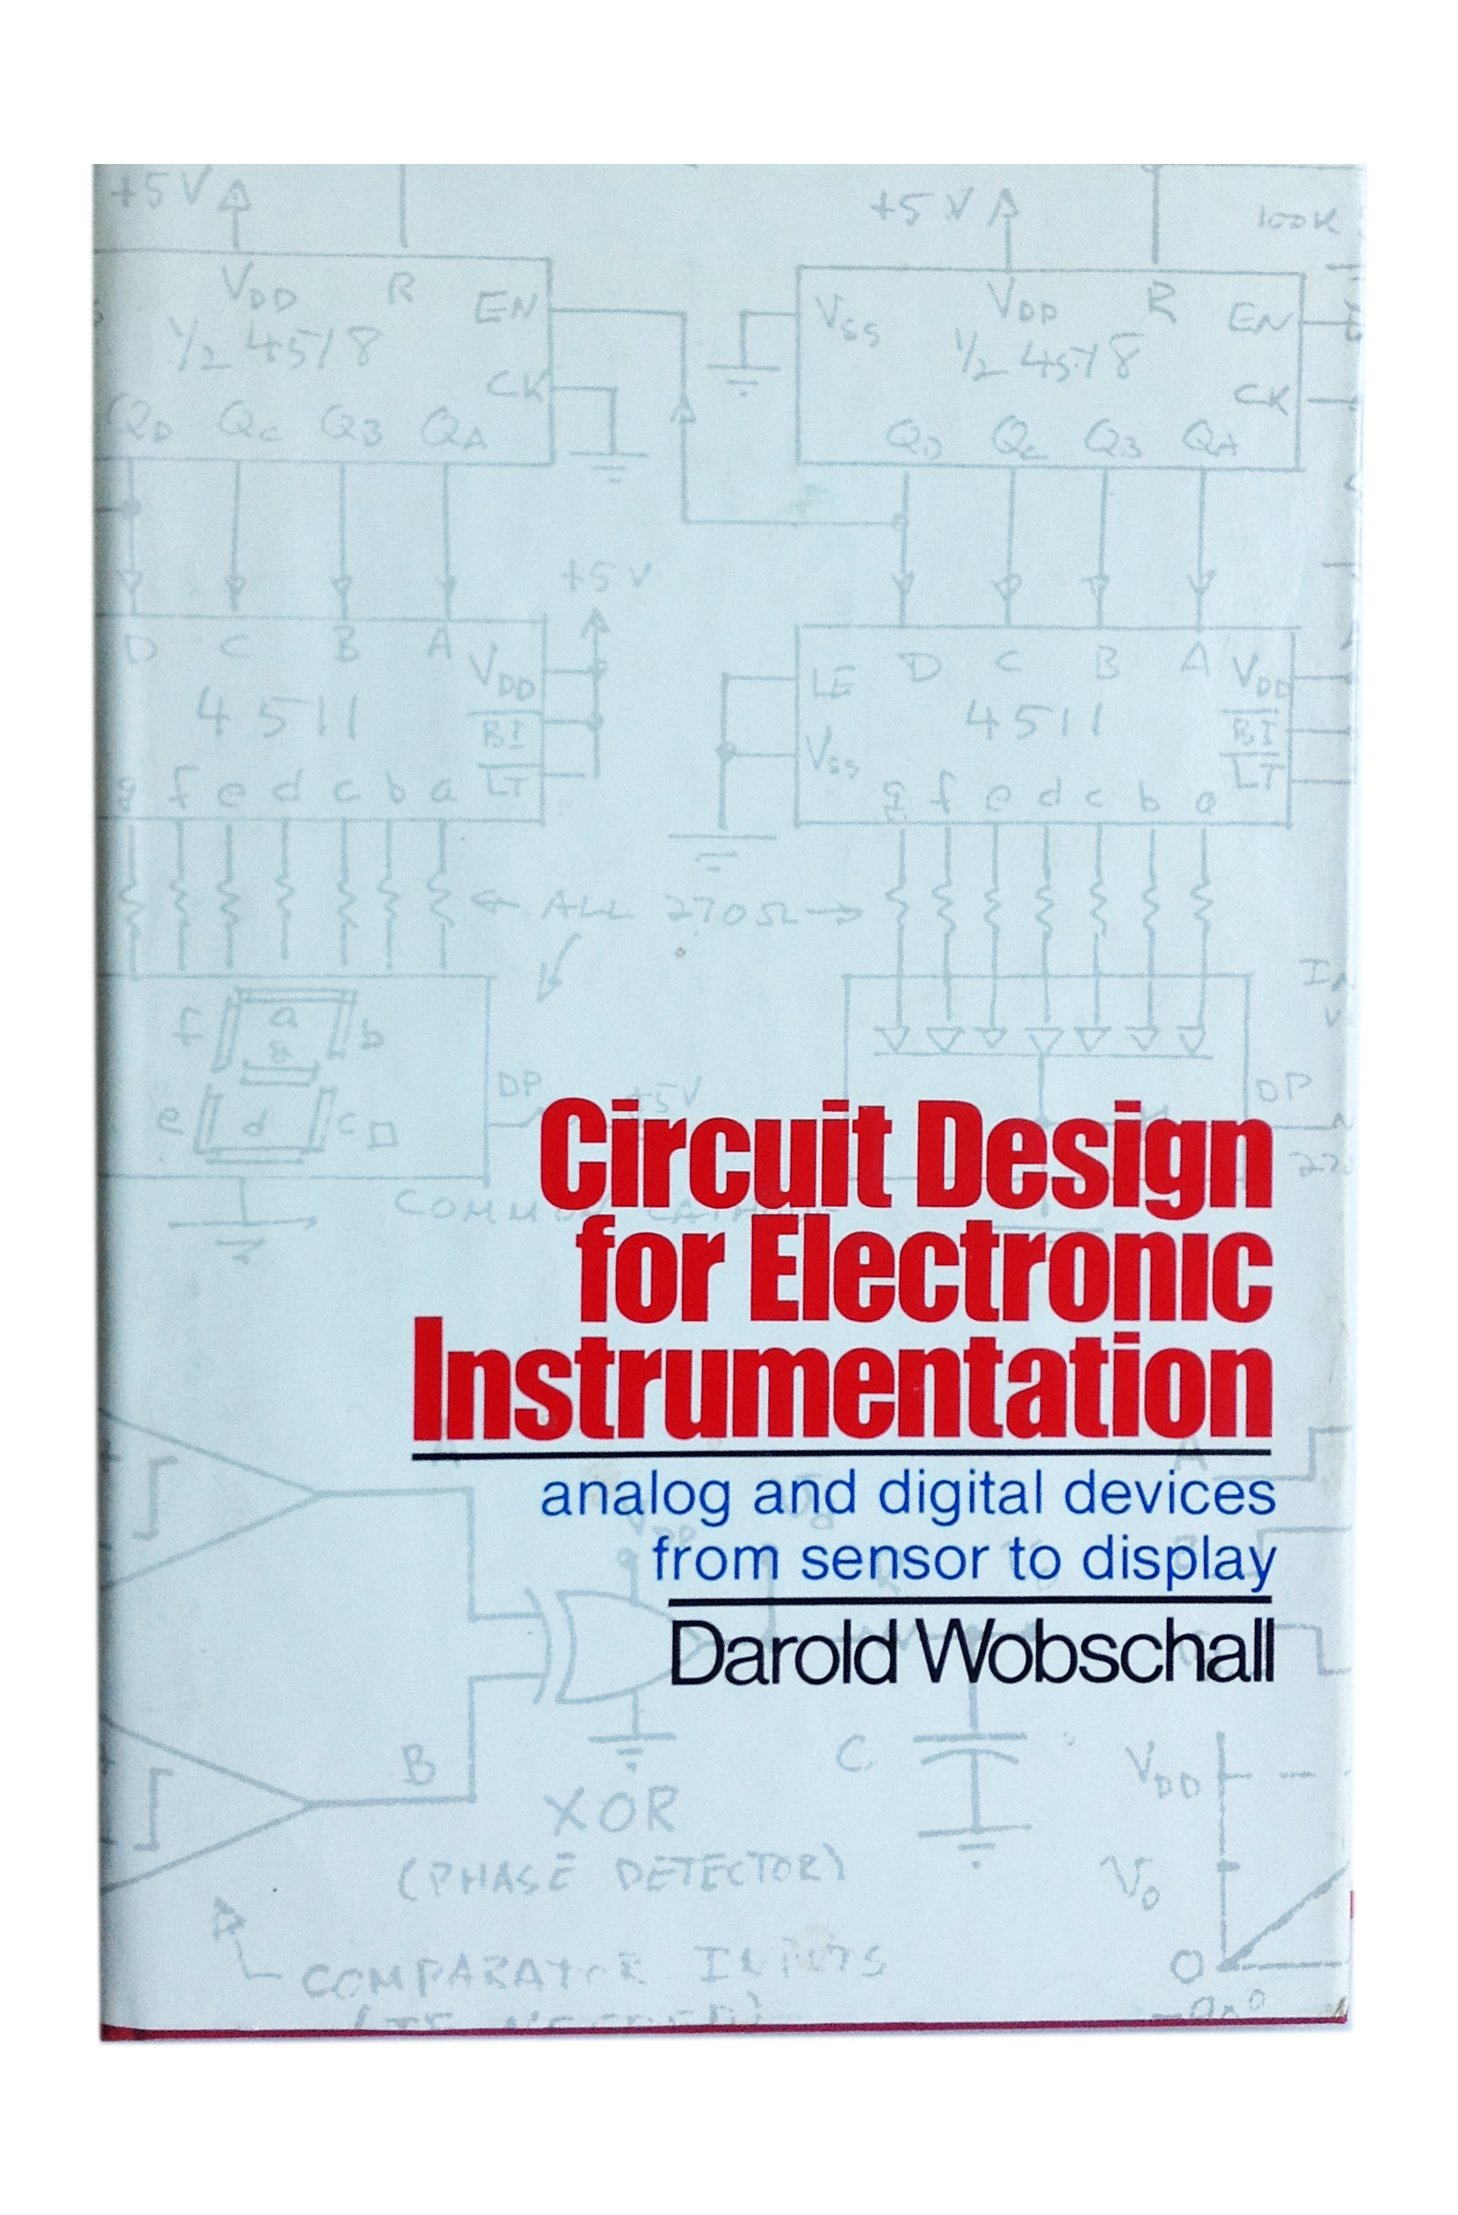 Circuit Design For Electronic Instrumentation Analog And Digital Basic Of Devices From Sensor To Display Darold Wobschall 9780070712300 Books